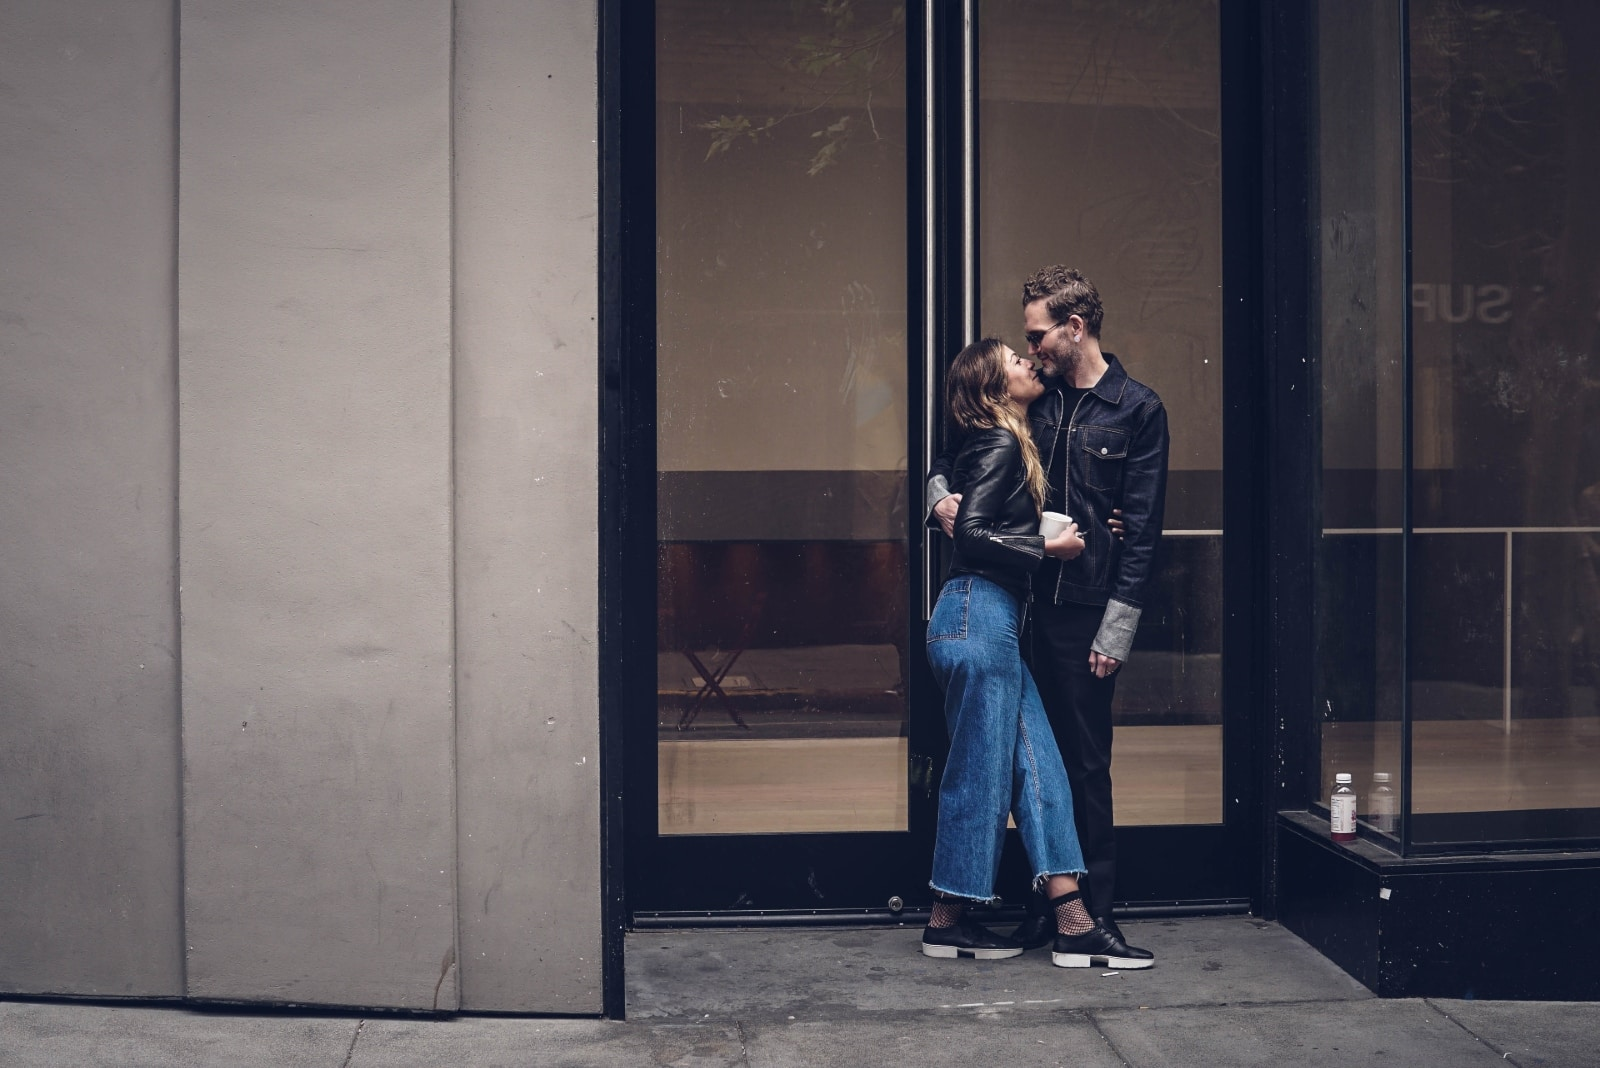 man and woman about to kiss while standing near glass door